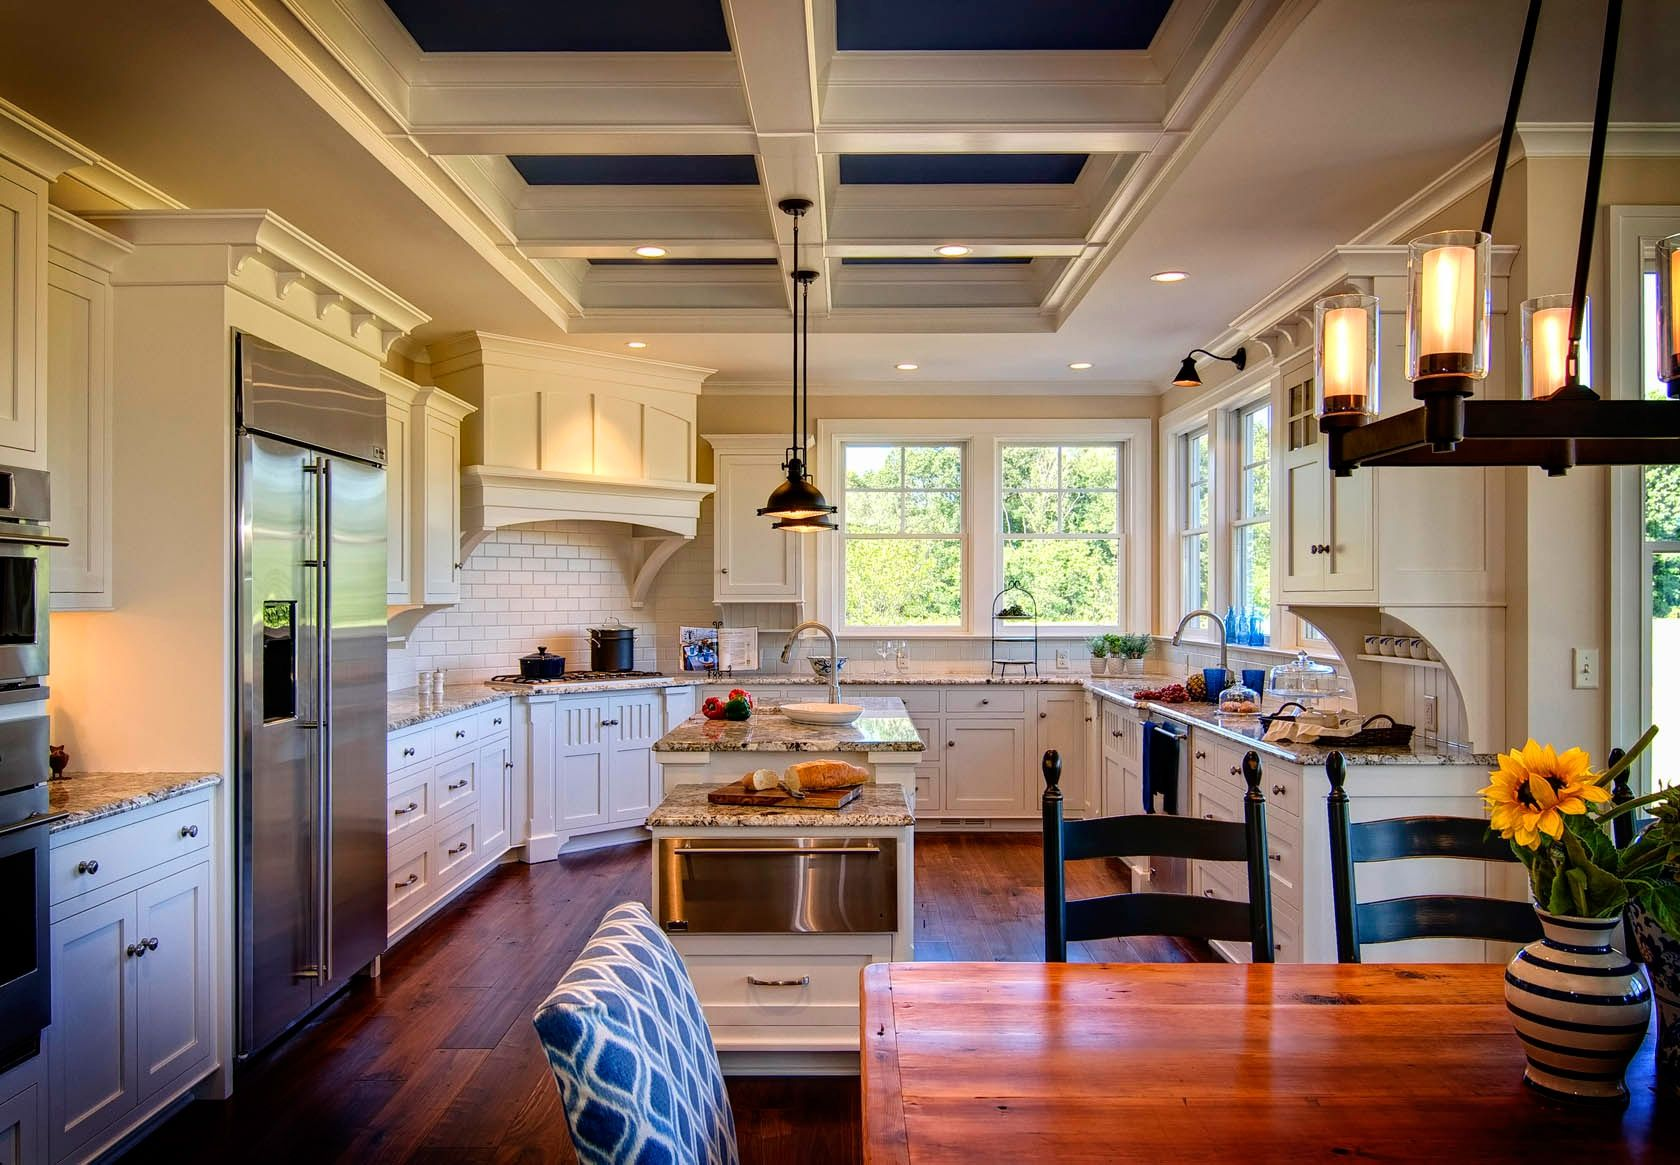 Coffered ceiling with accentual black for large colonial styled kitchen with black chairs too